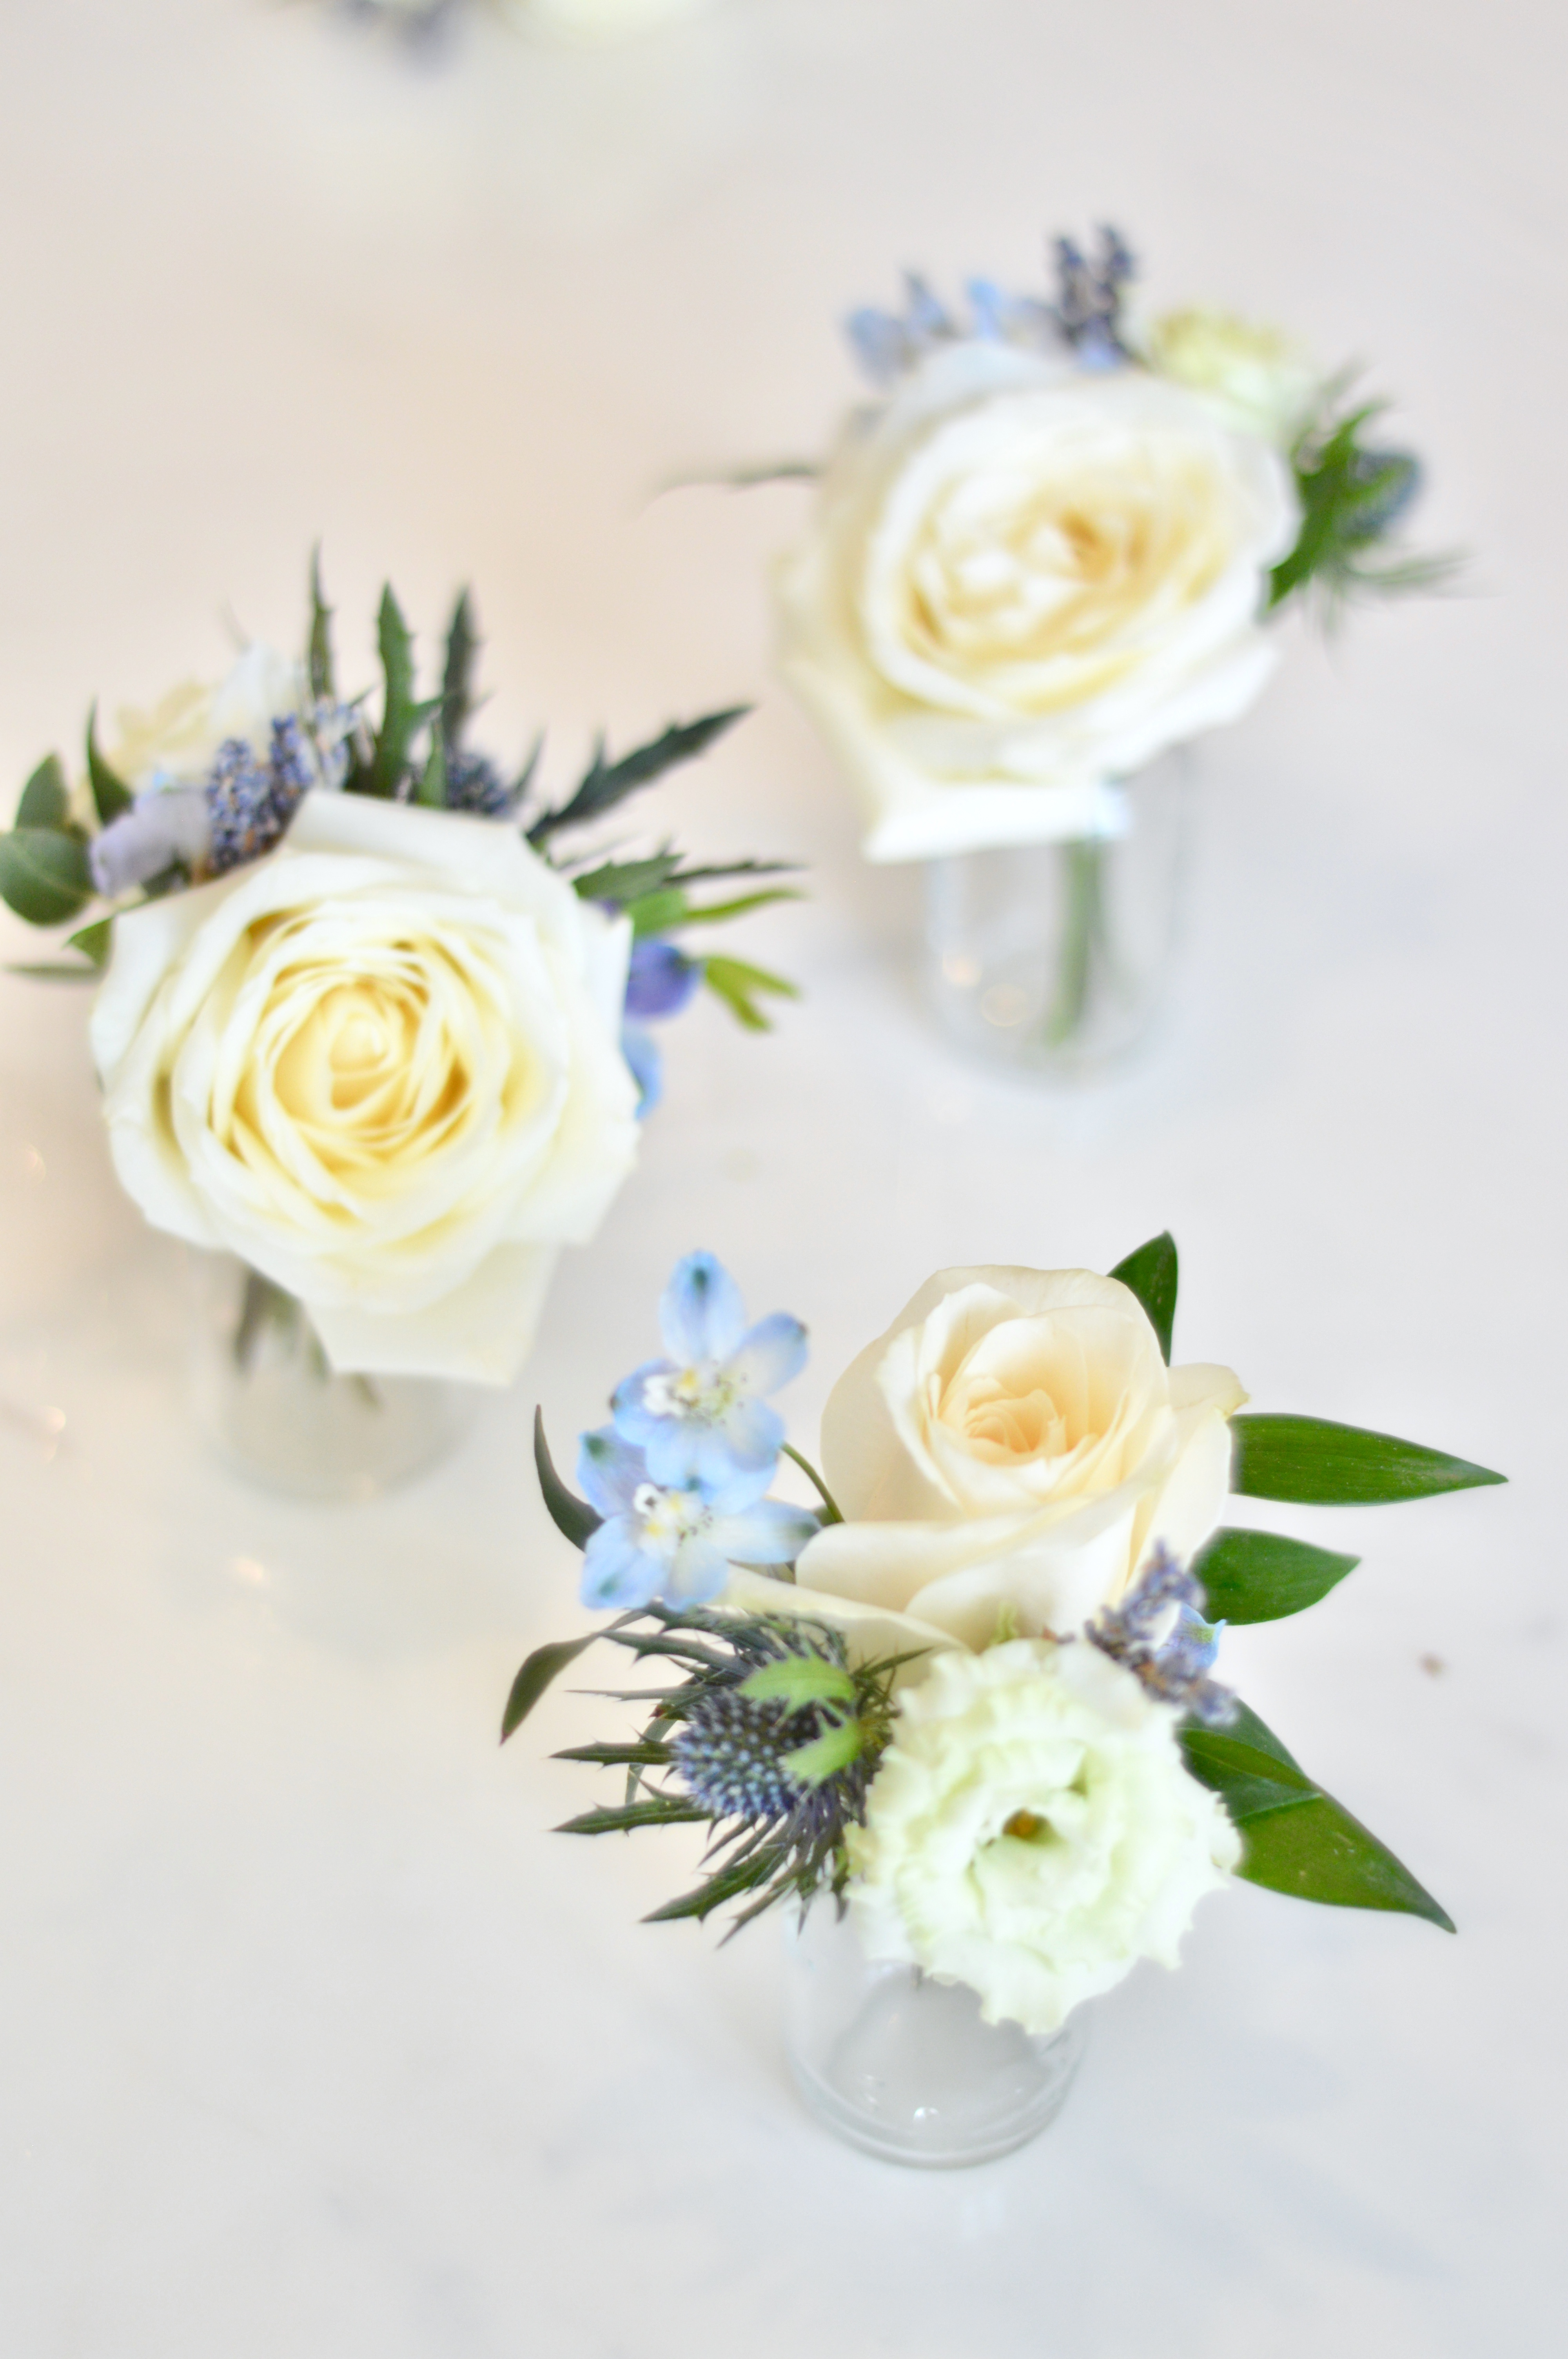 Rustic pink and blue Roses, Thistle, Lisianthus, Peonies, David Austin roses, Delphinium and foliage buttonhole Cherie Kelly flowers London